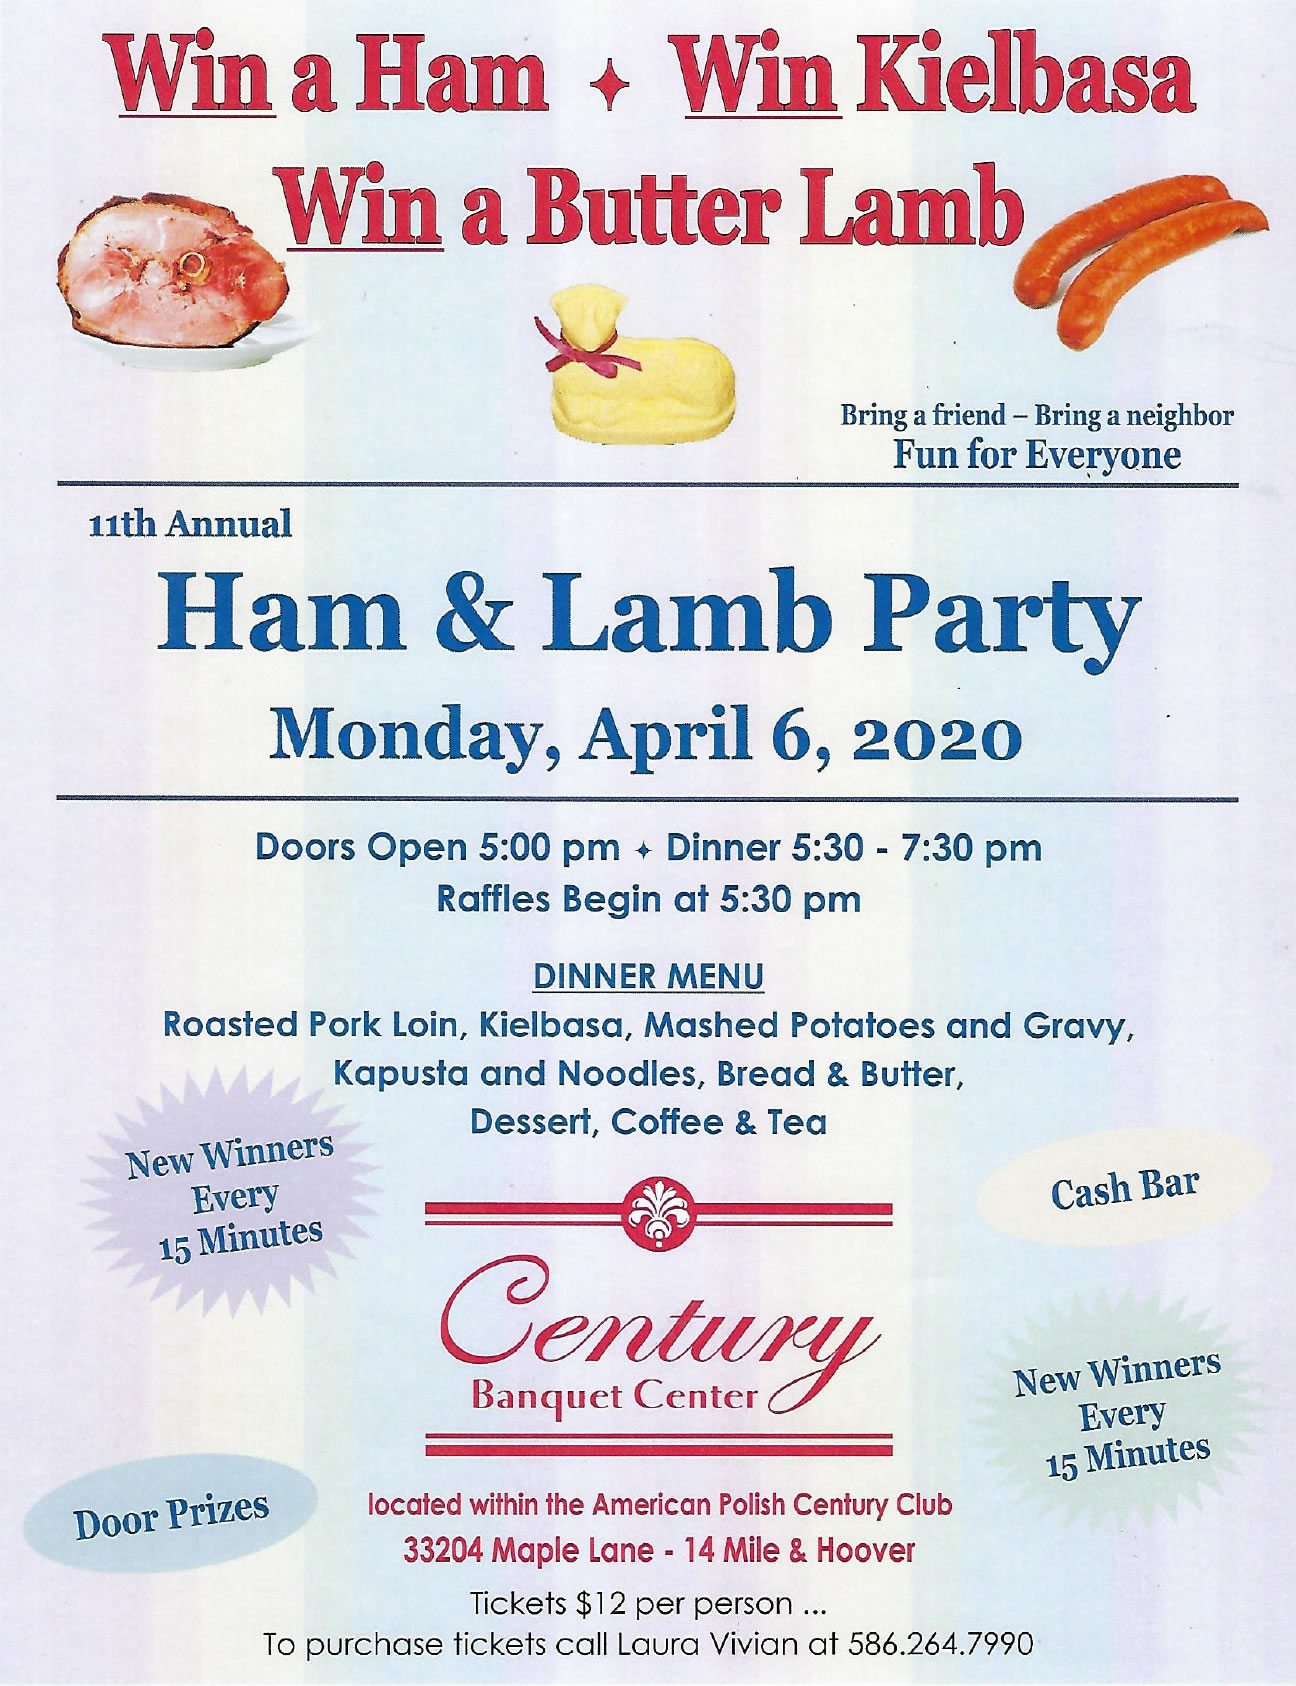 11th Annual Ham & Lamb Party